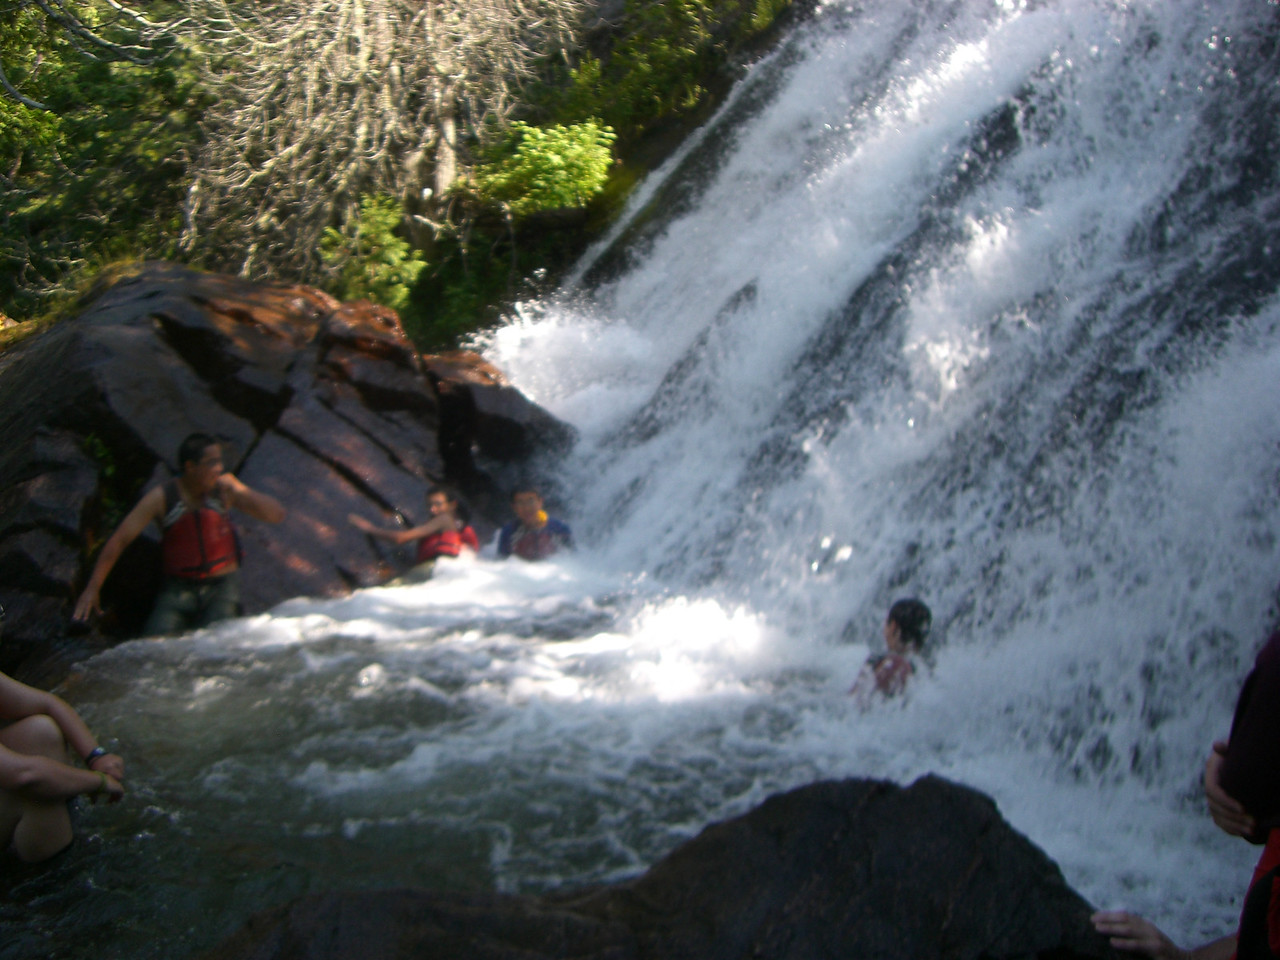 """We take our first """"bath"""" at Lousia Falls.  Much needed on this +90 degee day!"""